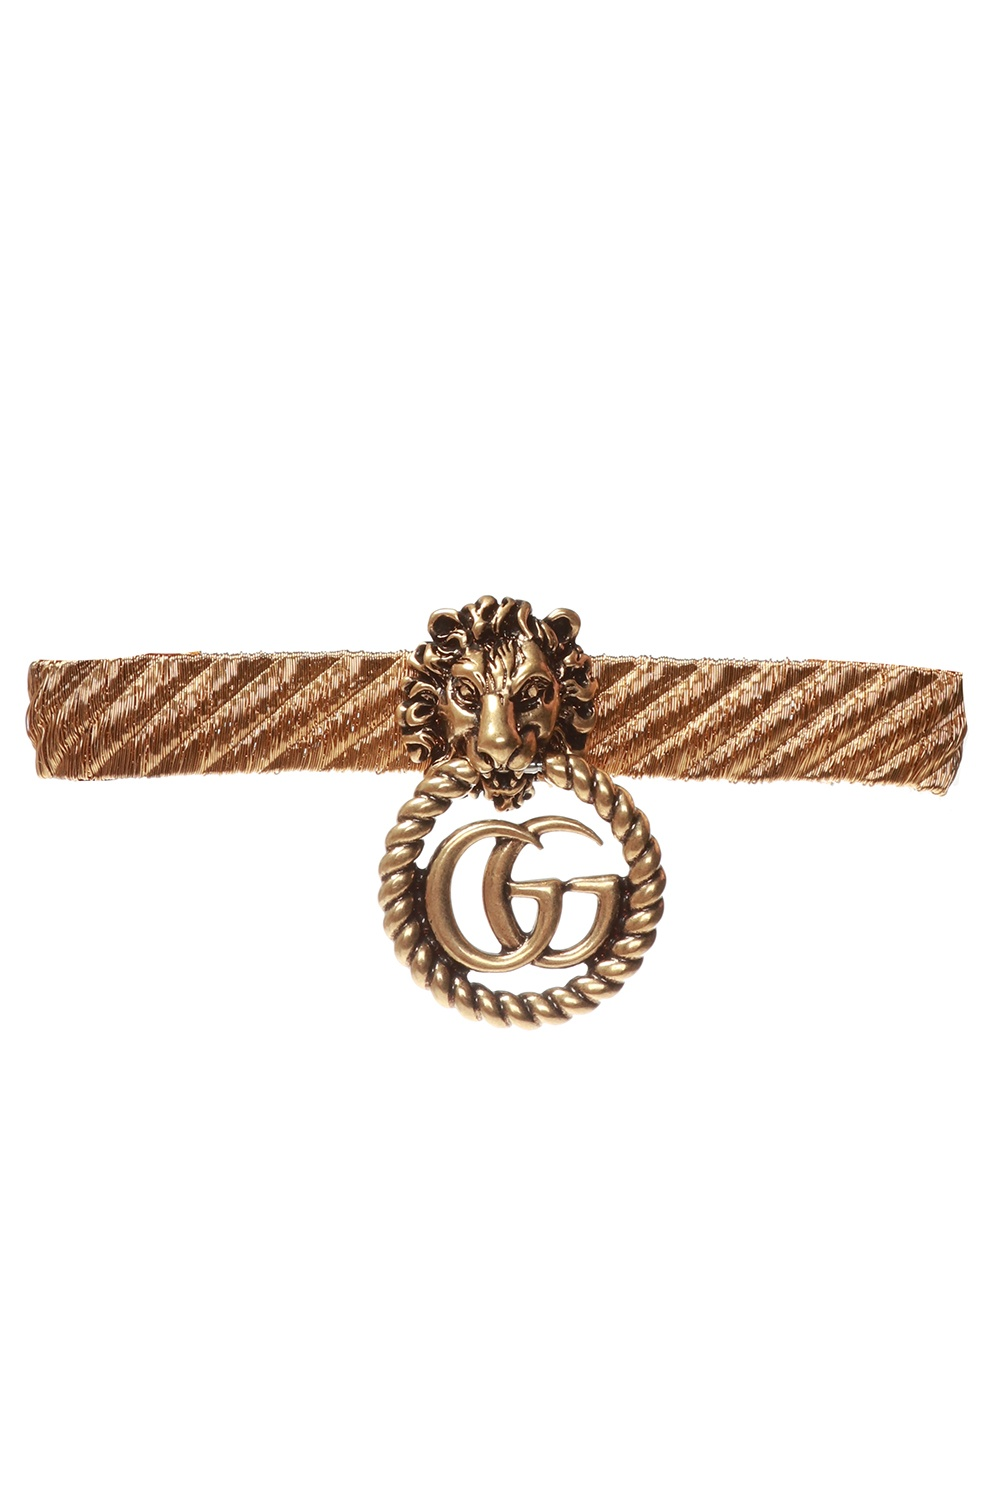 Gucci Bracelet with logo